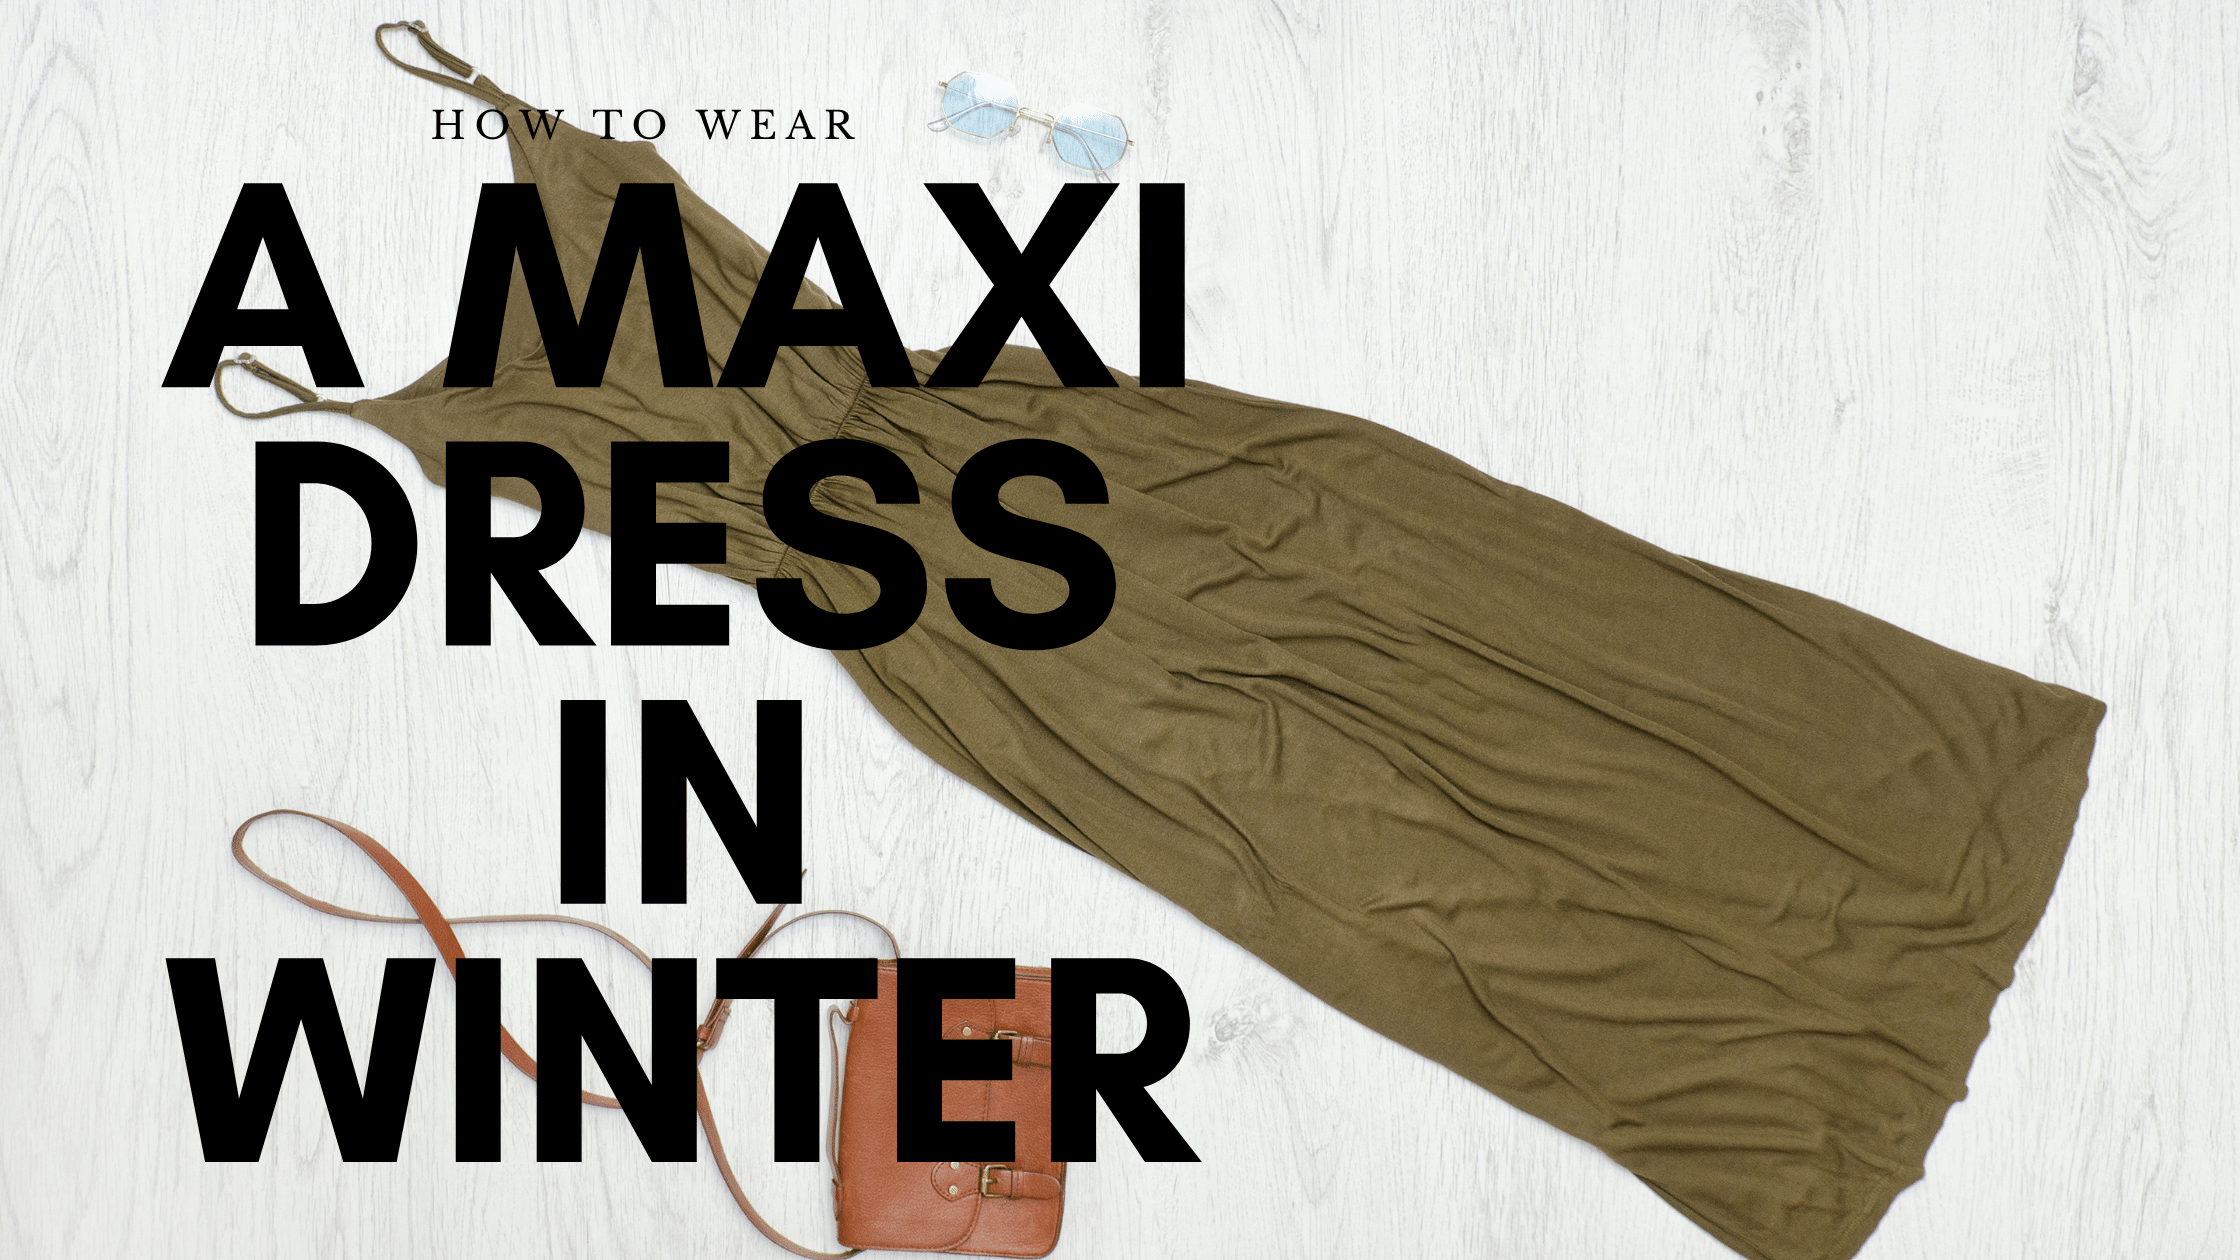 How to wear a maxi dress this winter